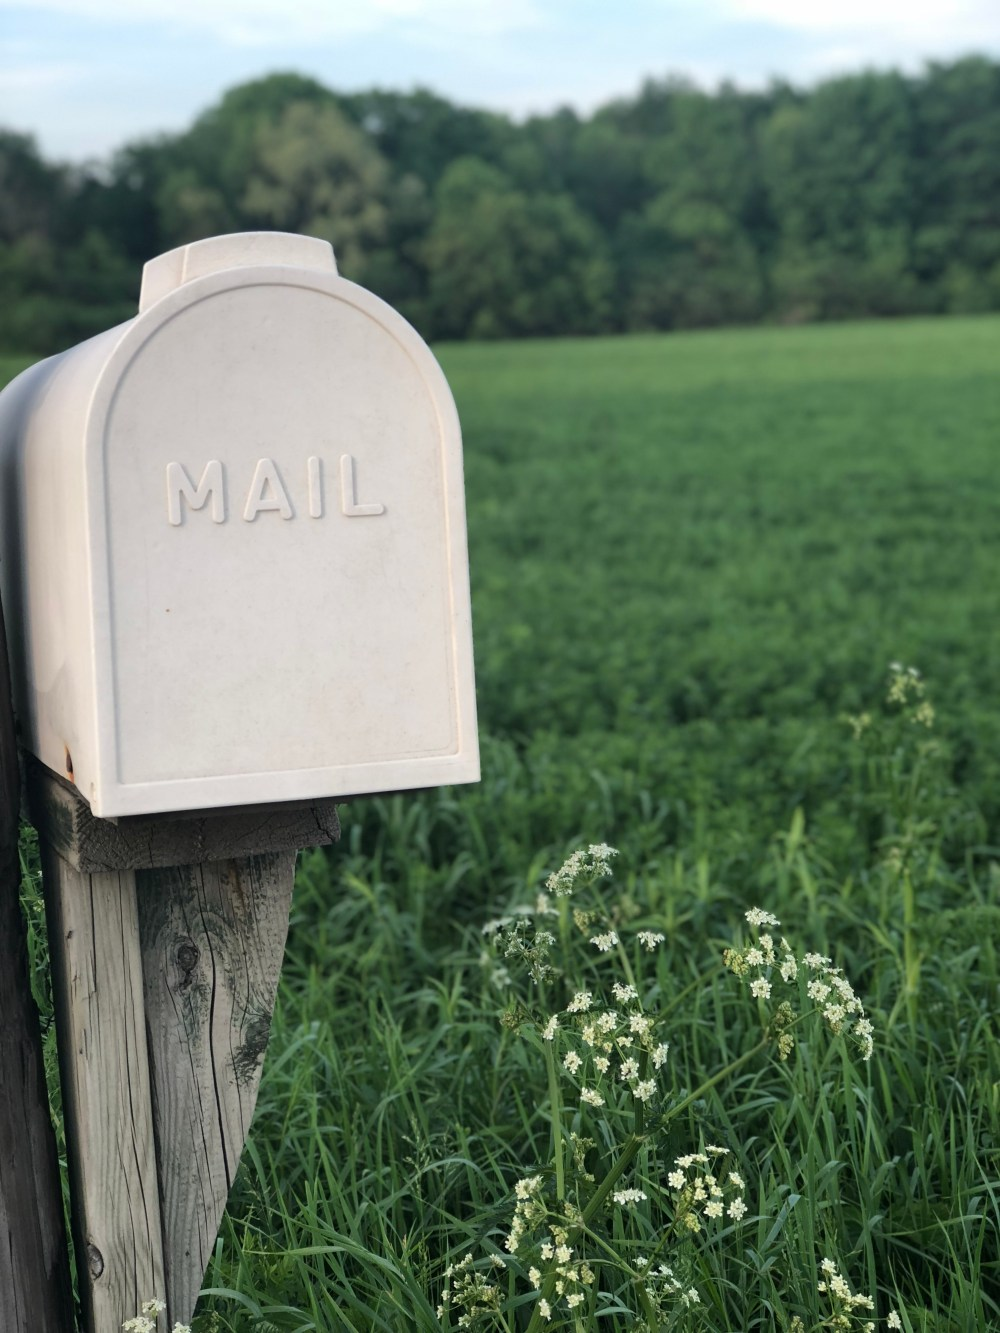 100 mailbox pictures hd